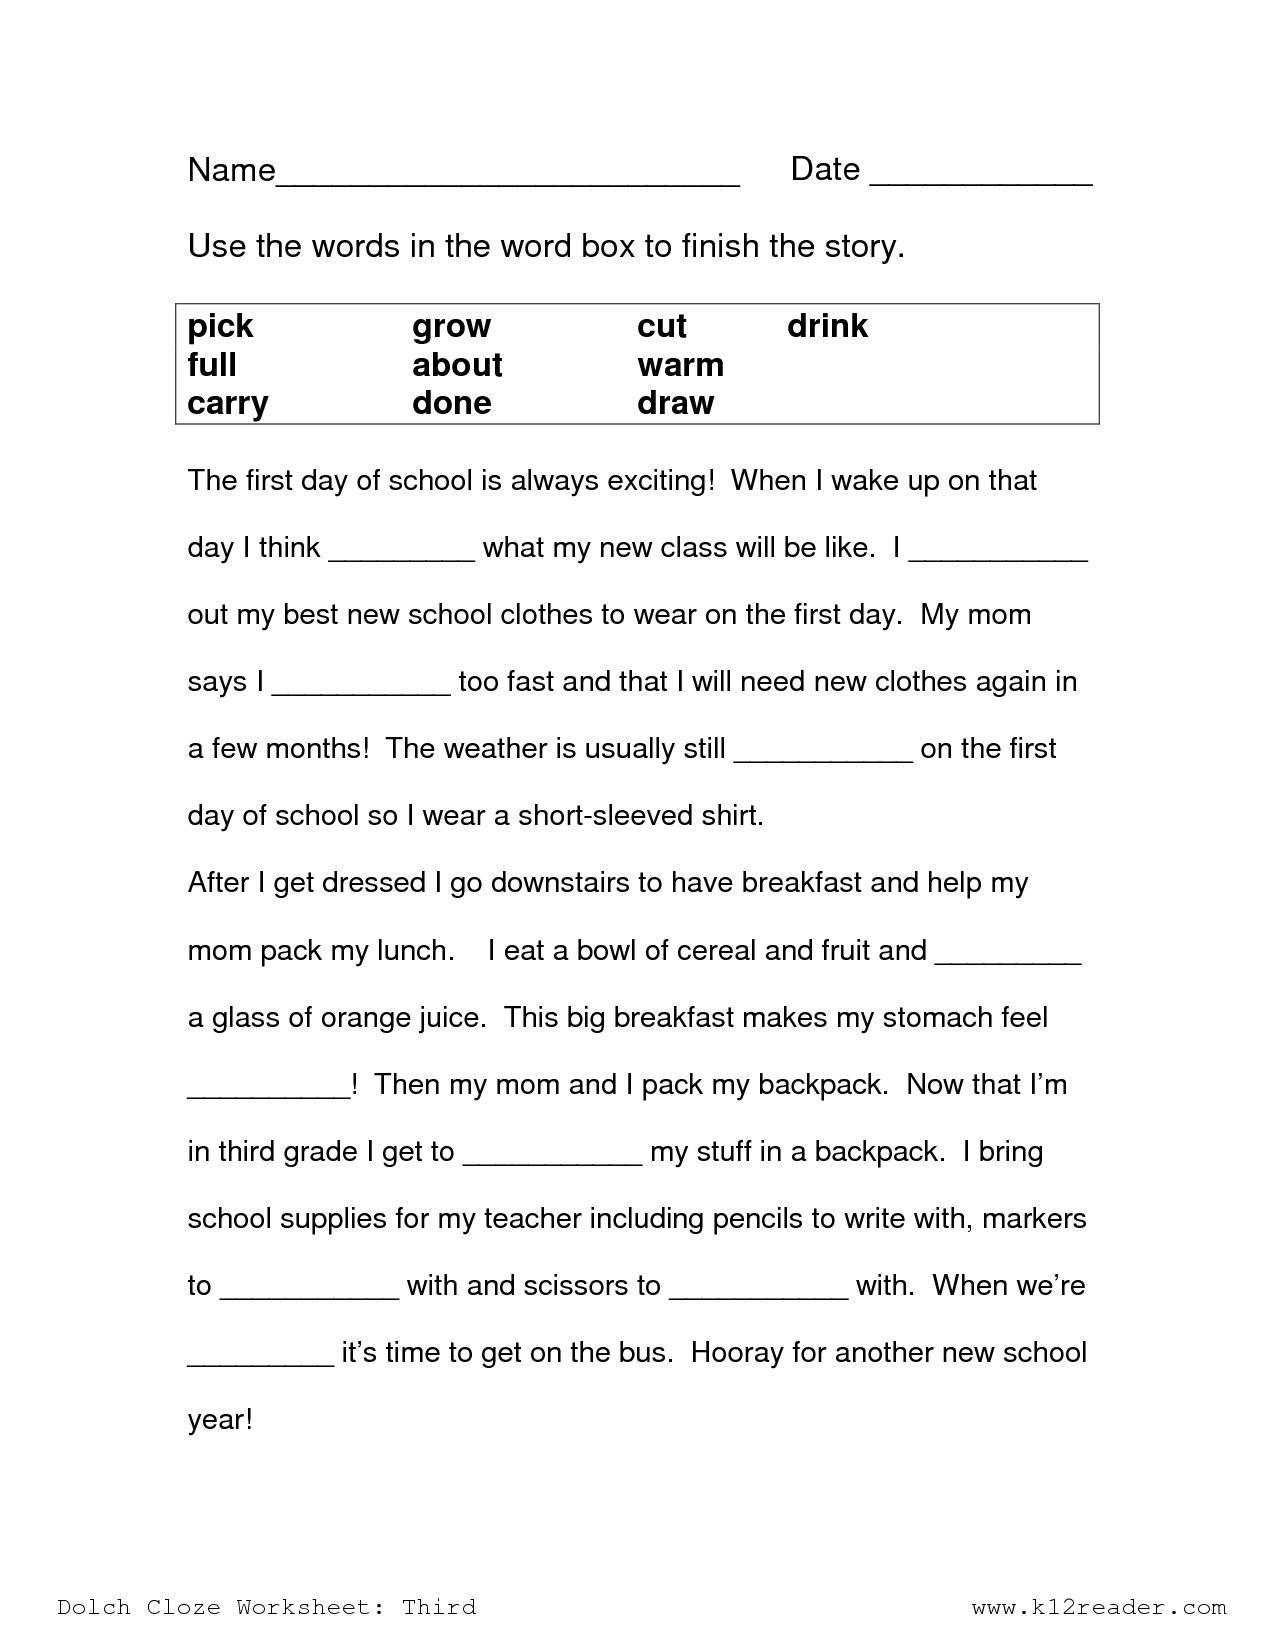 Worksheets Cloze Worksheets cloze passages for 3rd grade context clues school district and grade